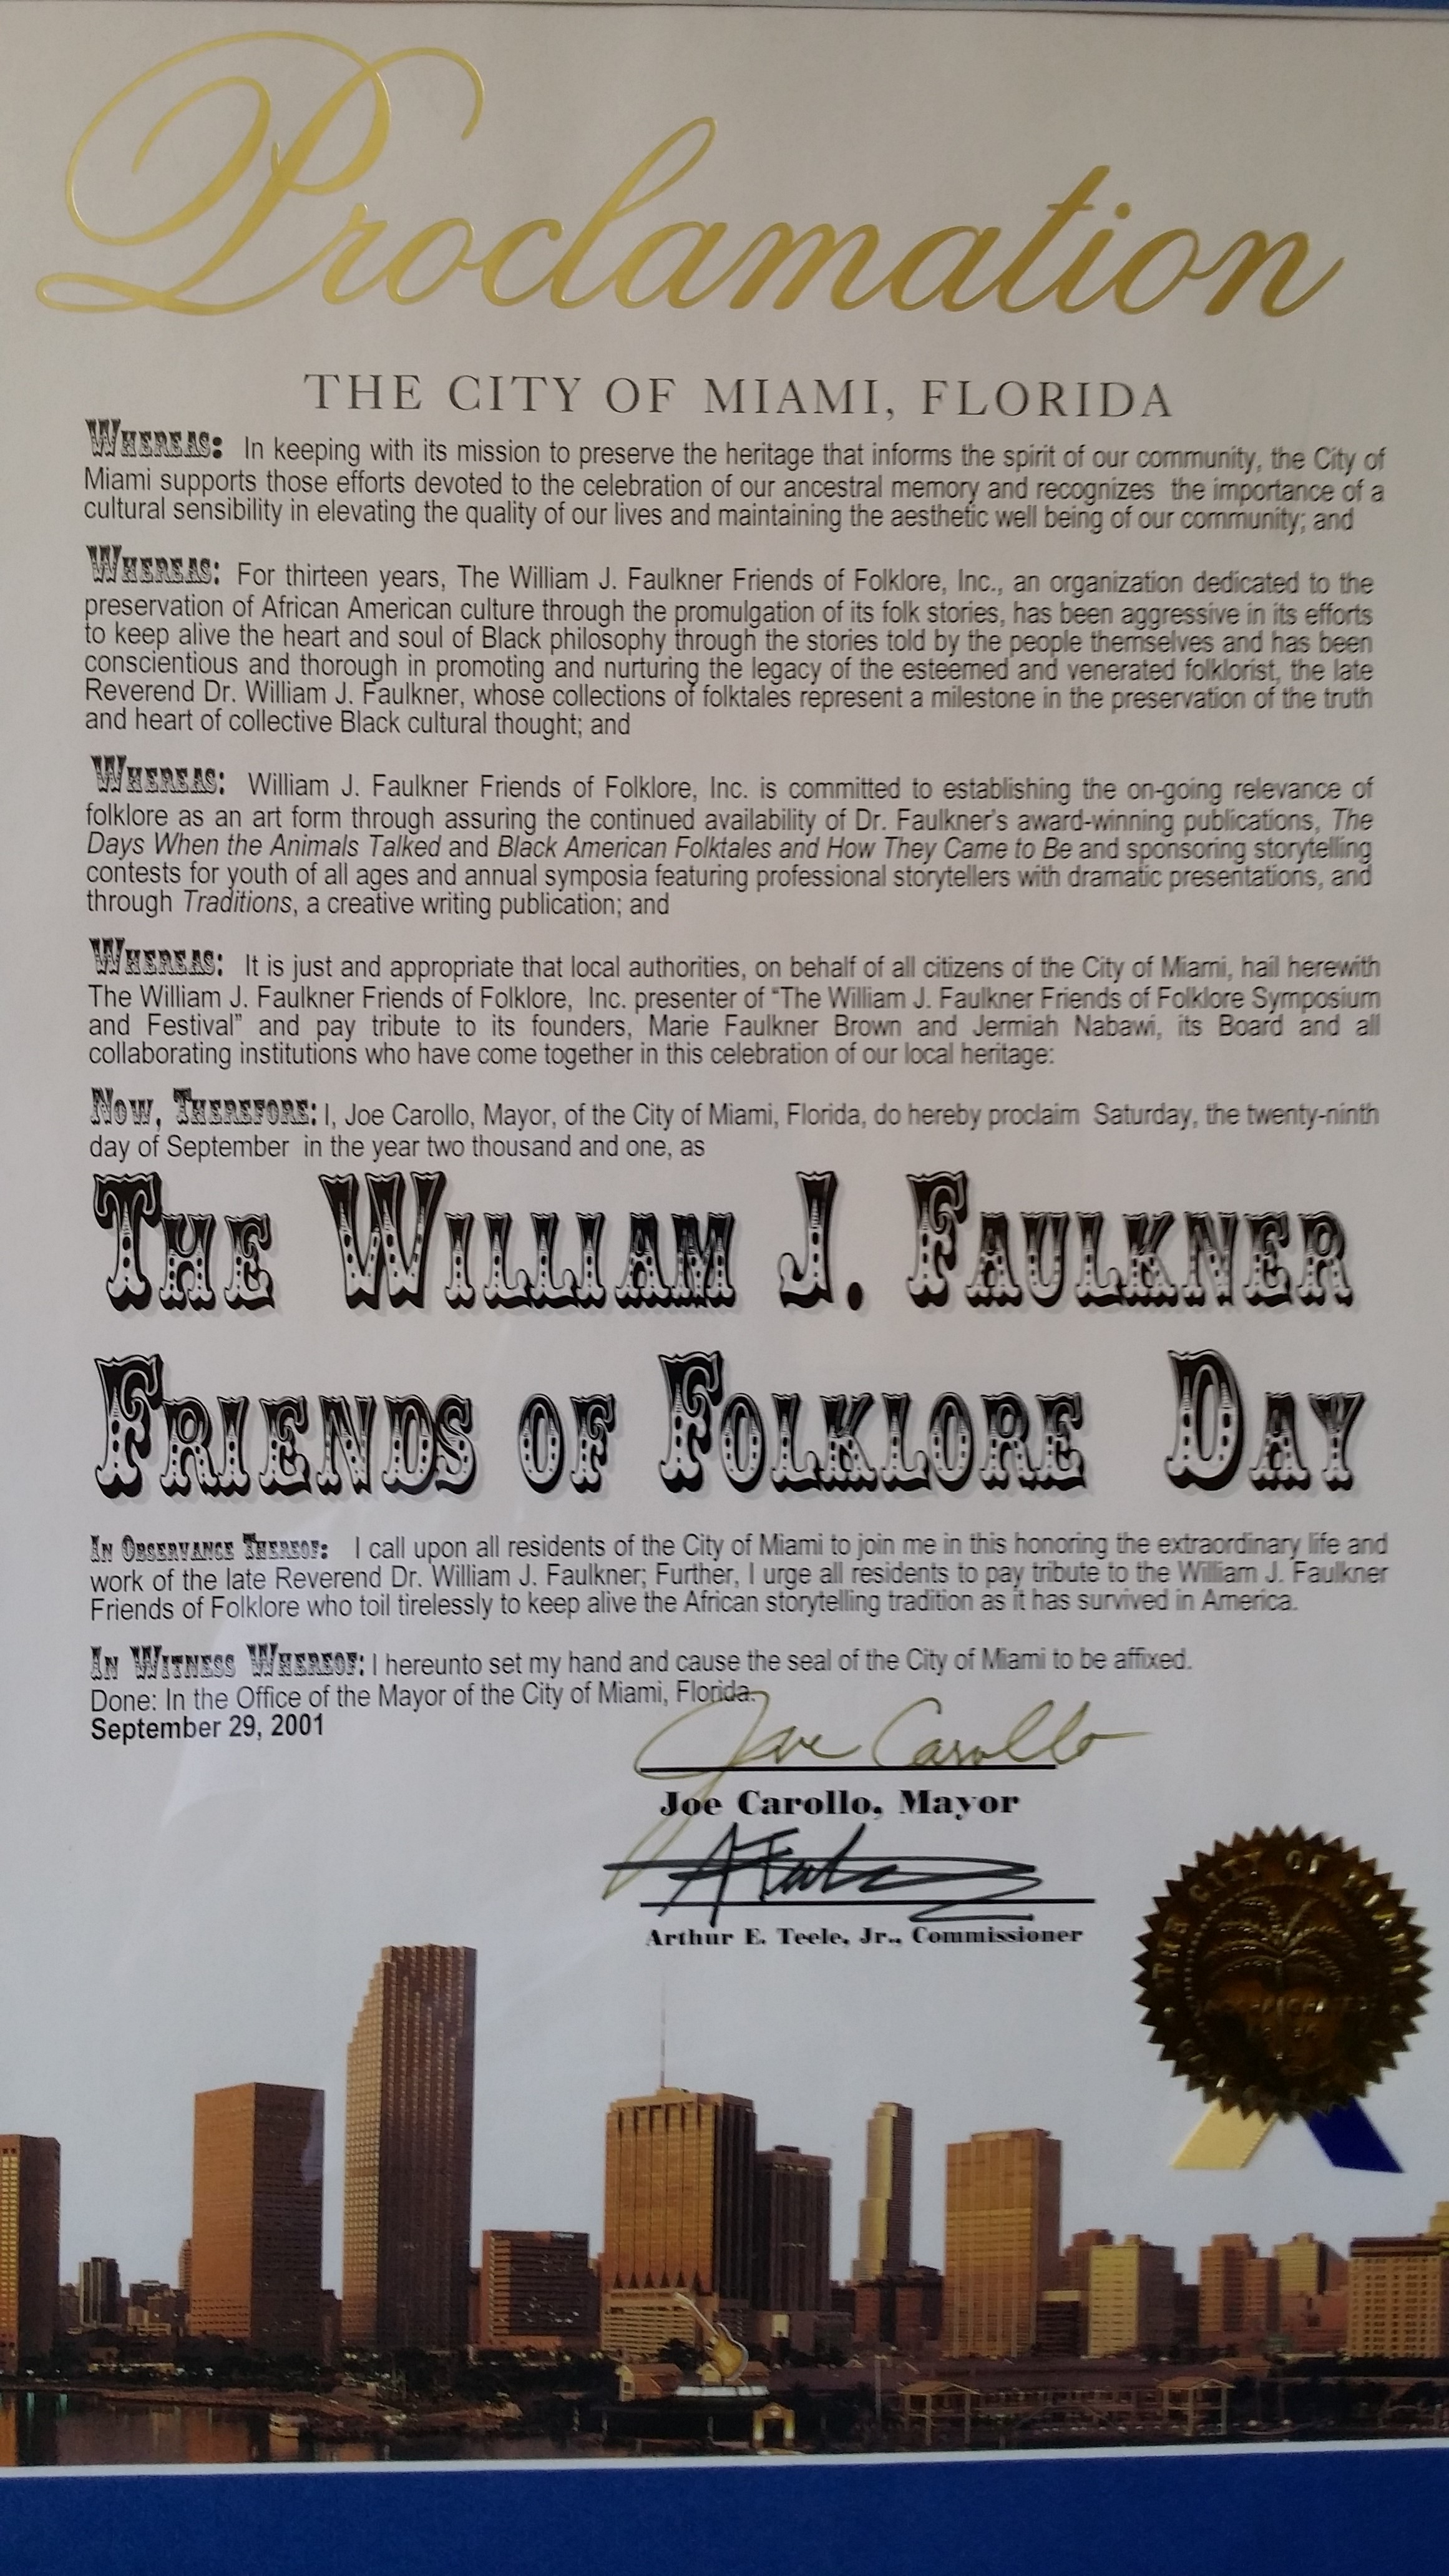 Thank you, Wm. J. Faulkner Friends of Folklore . . .